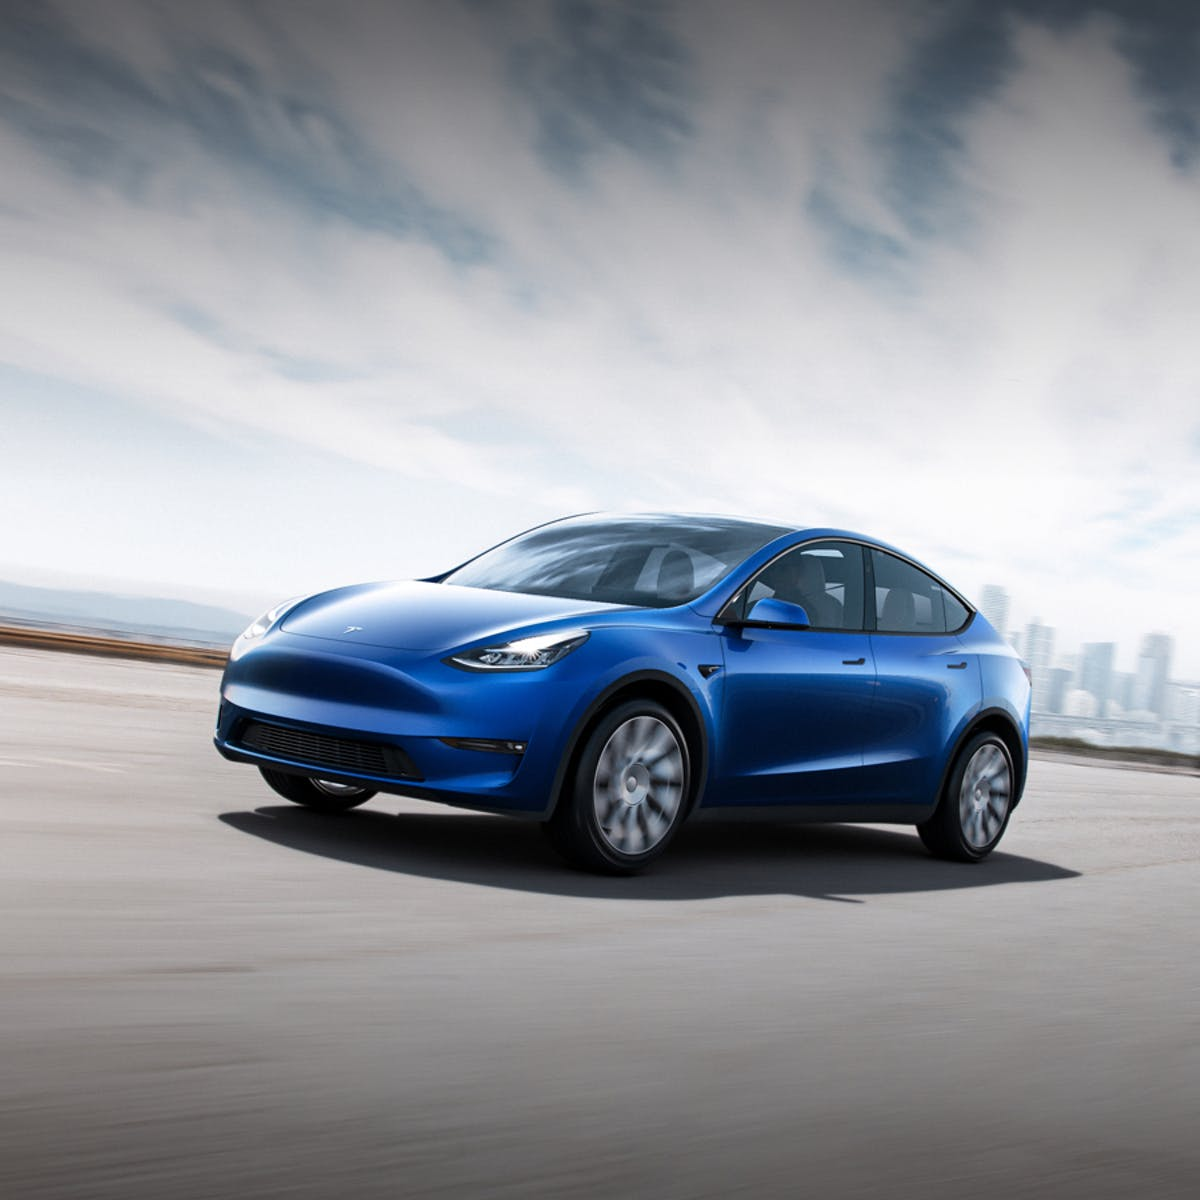 Tesla Model Y: 14 Images and Videos Show the Electric SUV in